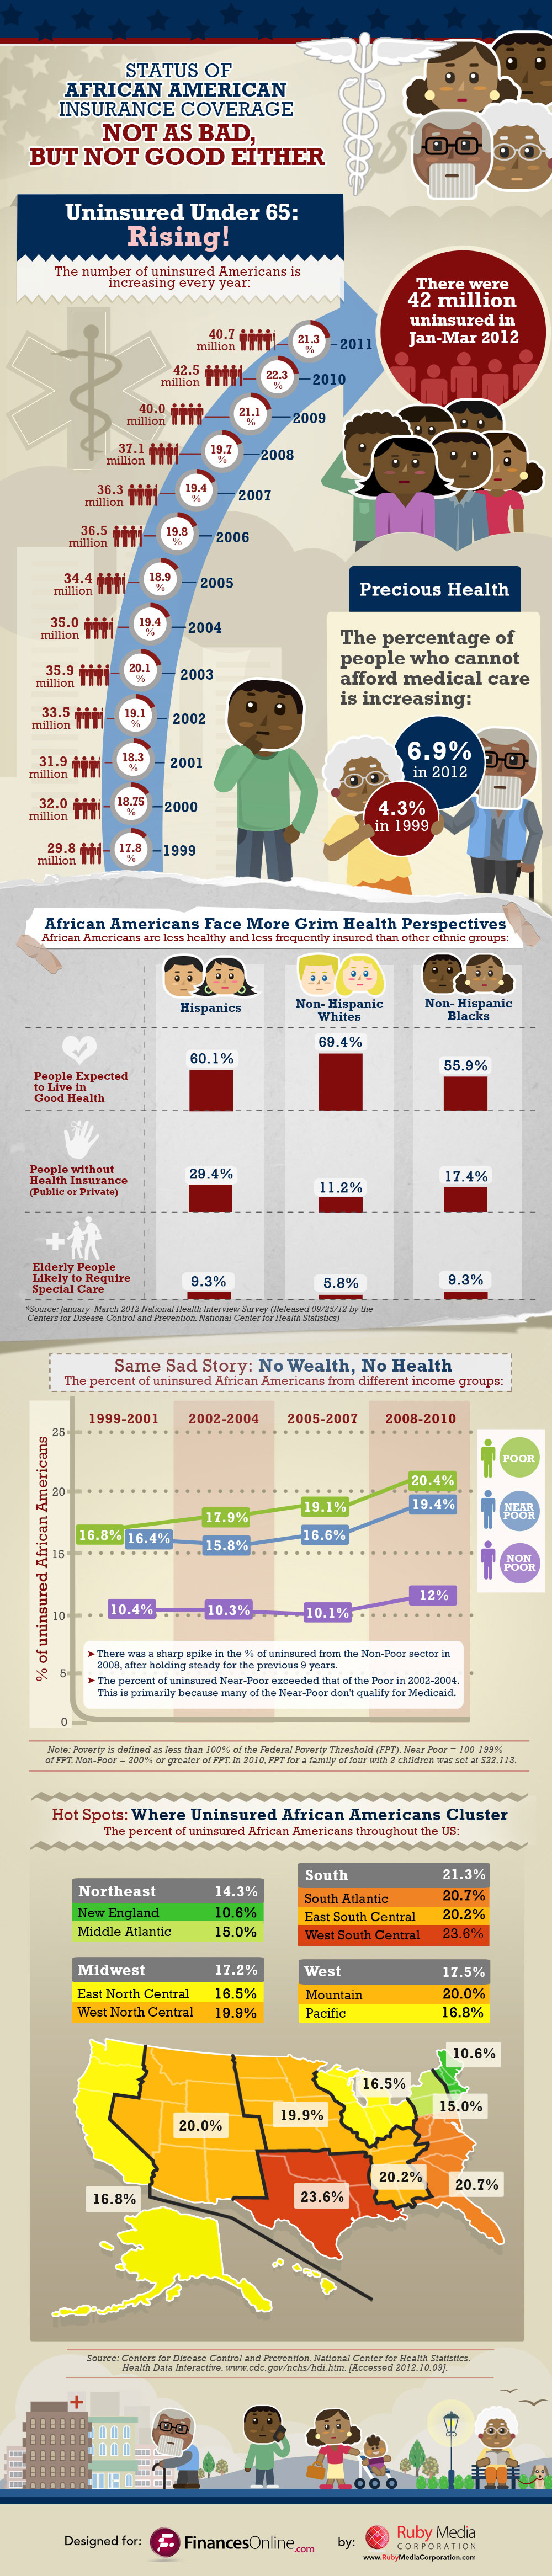 infographic-health-insurance-of-african-americans